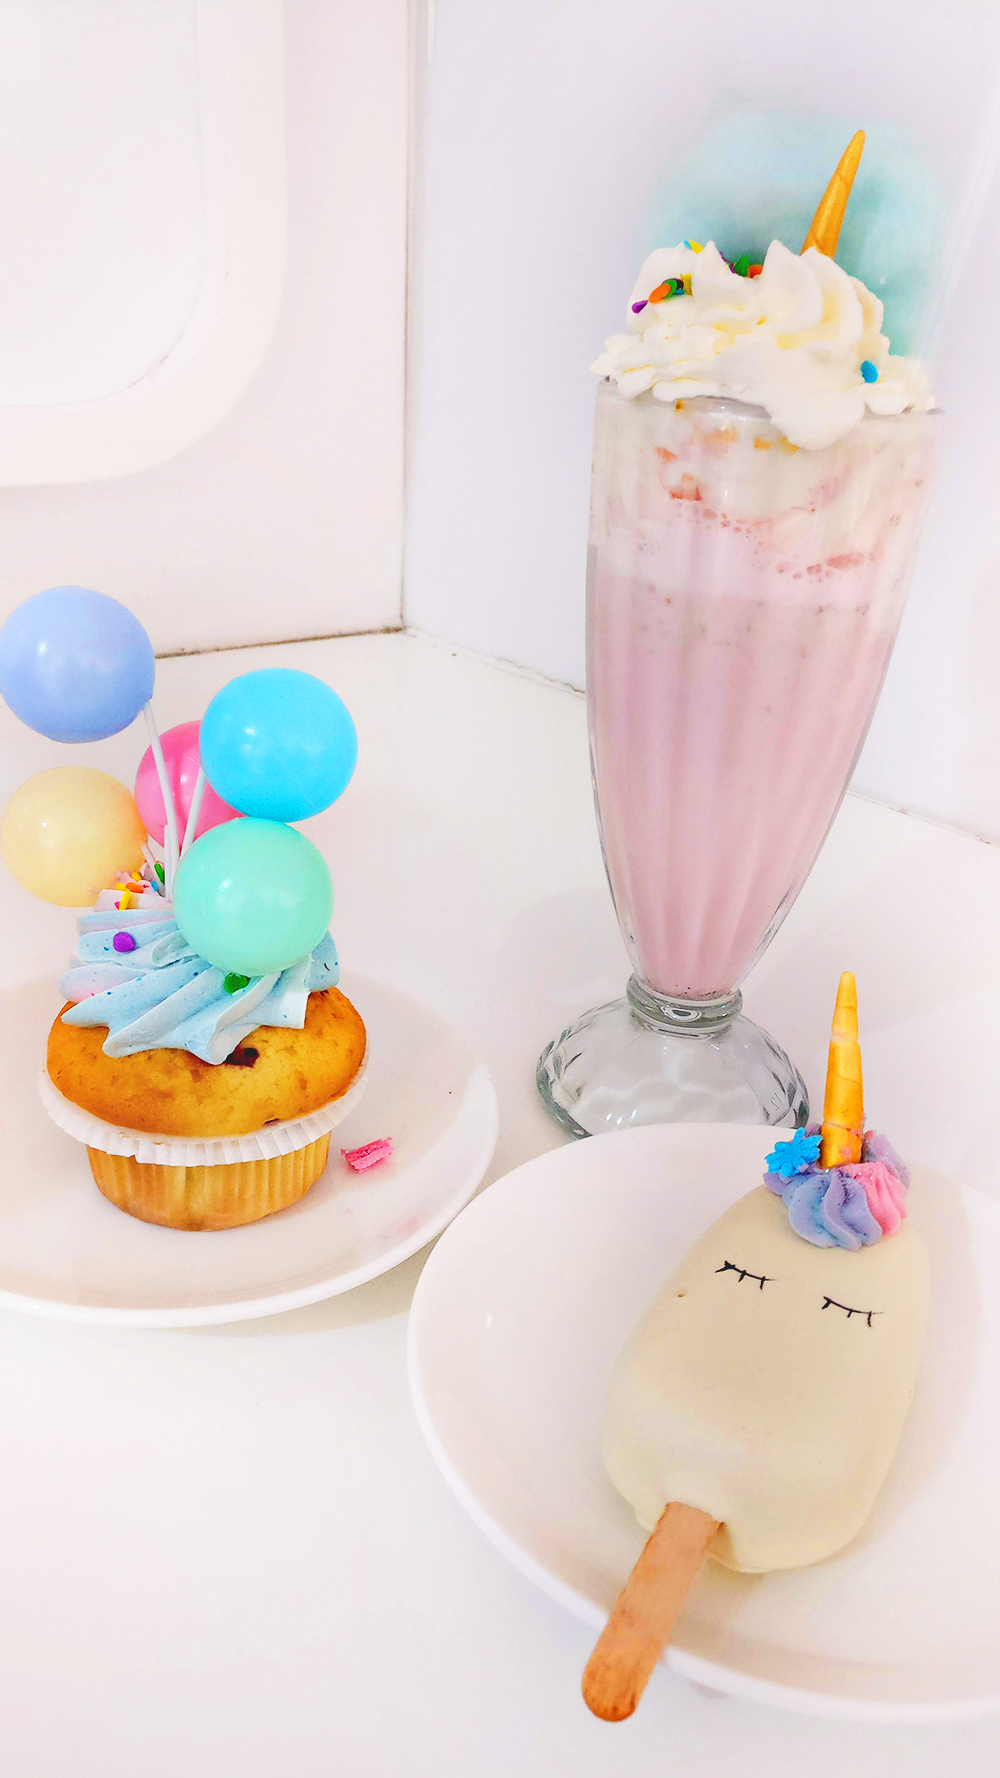 Unicorn cupcake, unicorn magnum and unicorn shake - Unicorn days in Sugar shop - Unicorn and rainbow food guide to Budapest, Hungary | Aliz's Wonderland #unicorn #unicornfood #budapest #rainbowfood #budapestfood